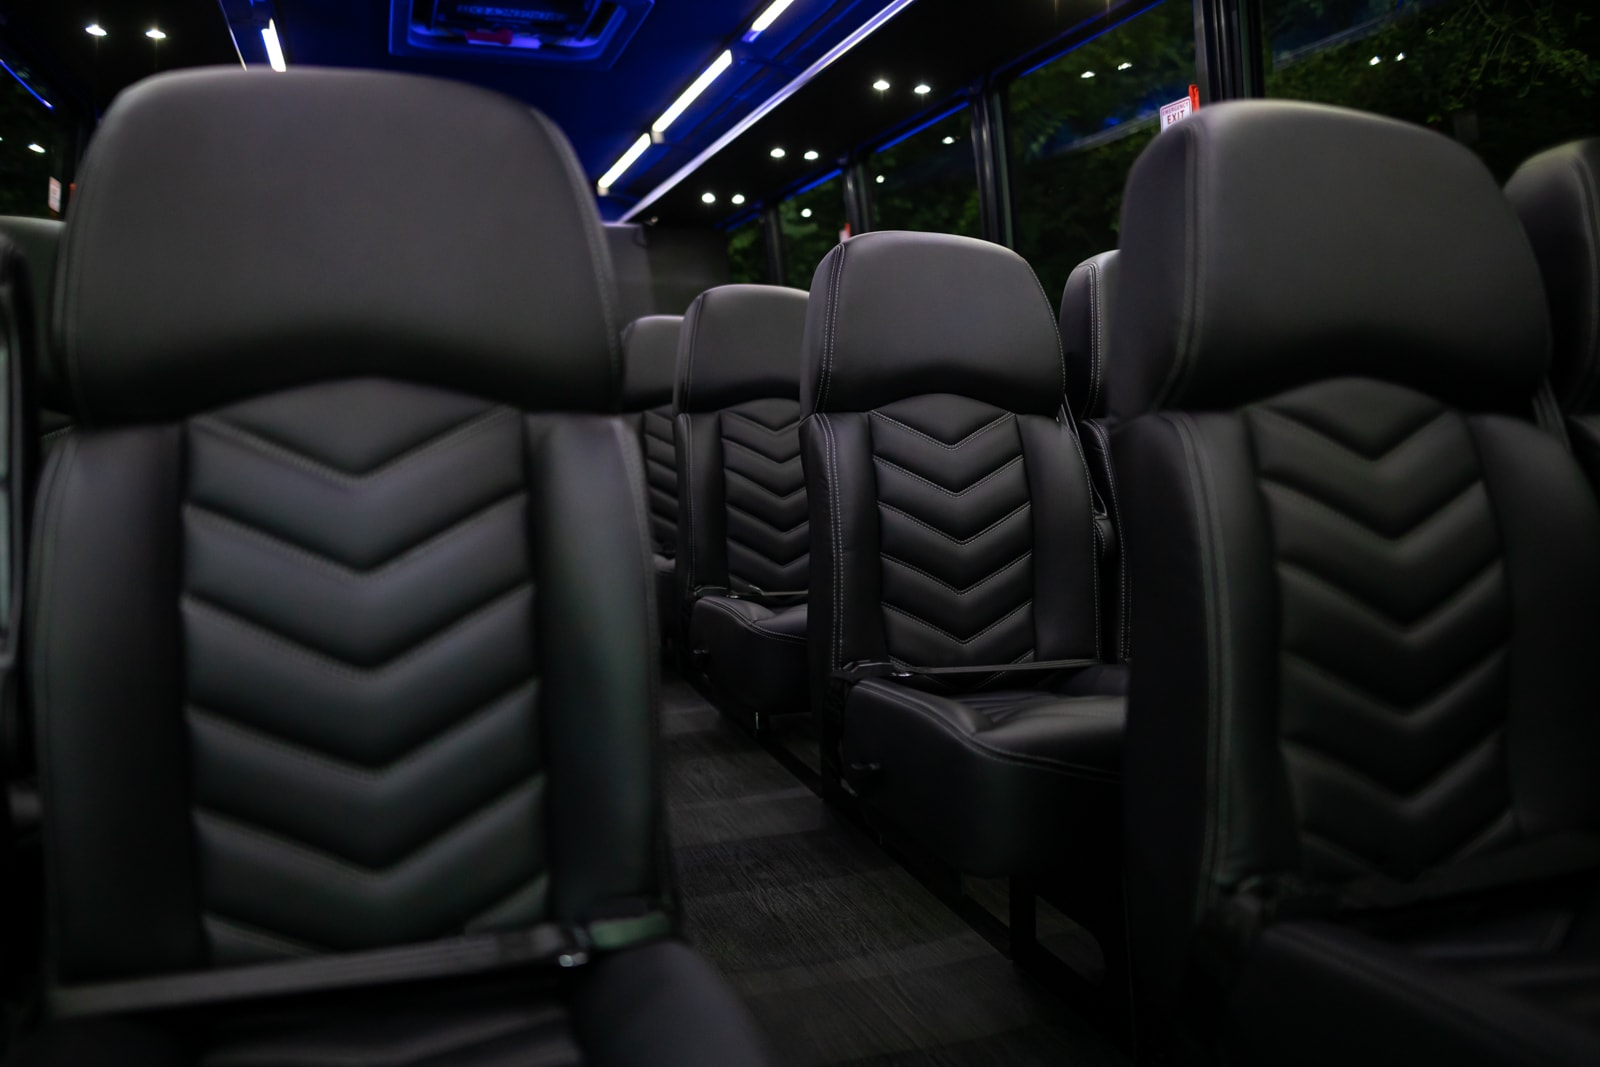 Interior of a luxurious coach making it the perfect limo rental for large events.